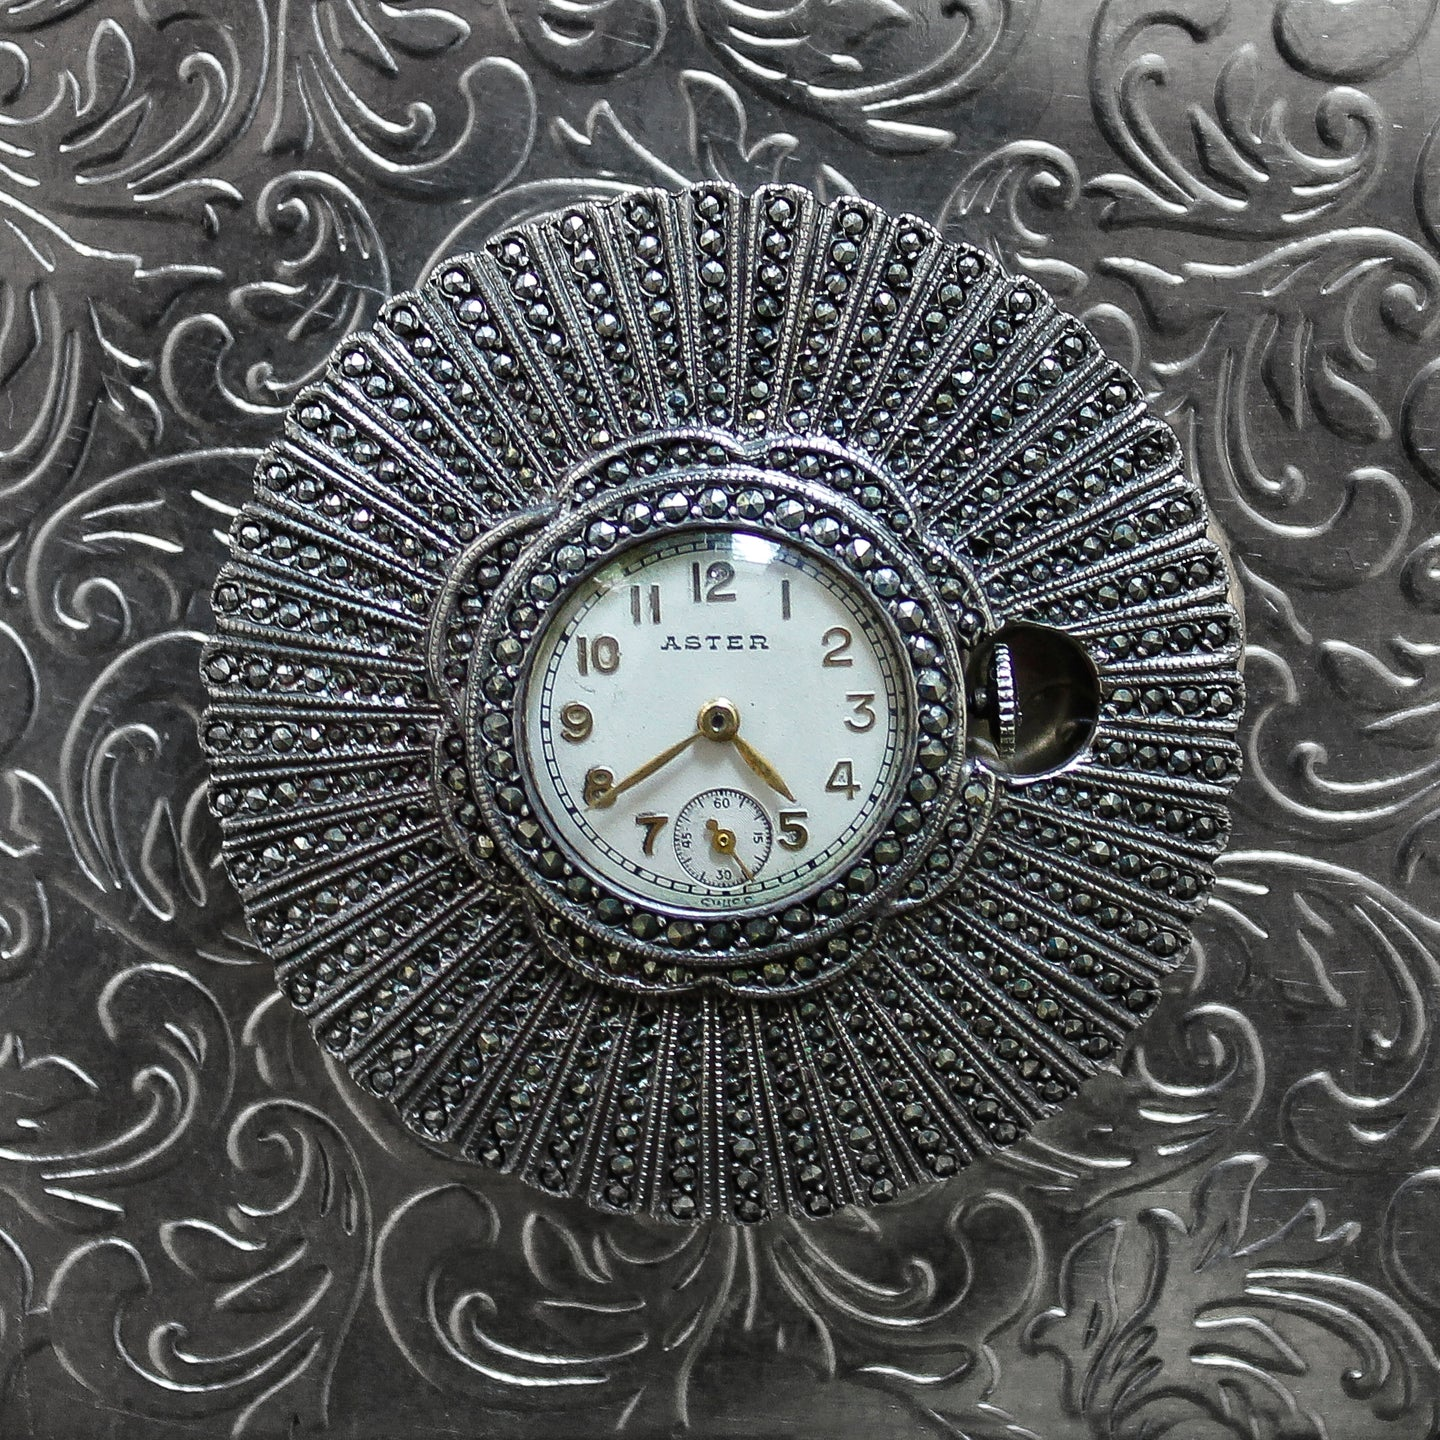 Marcasite Watch Pin by Aster c1930